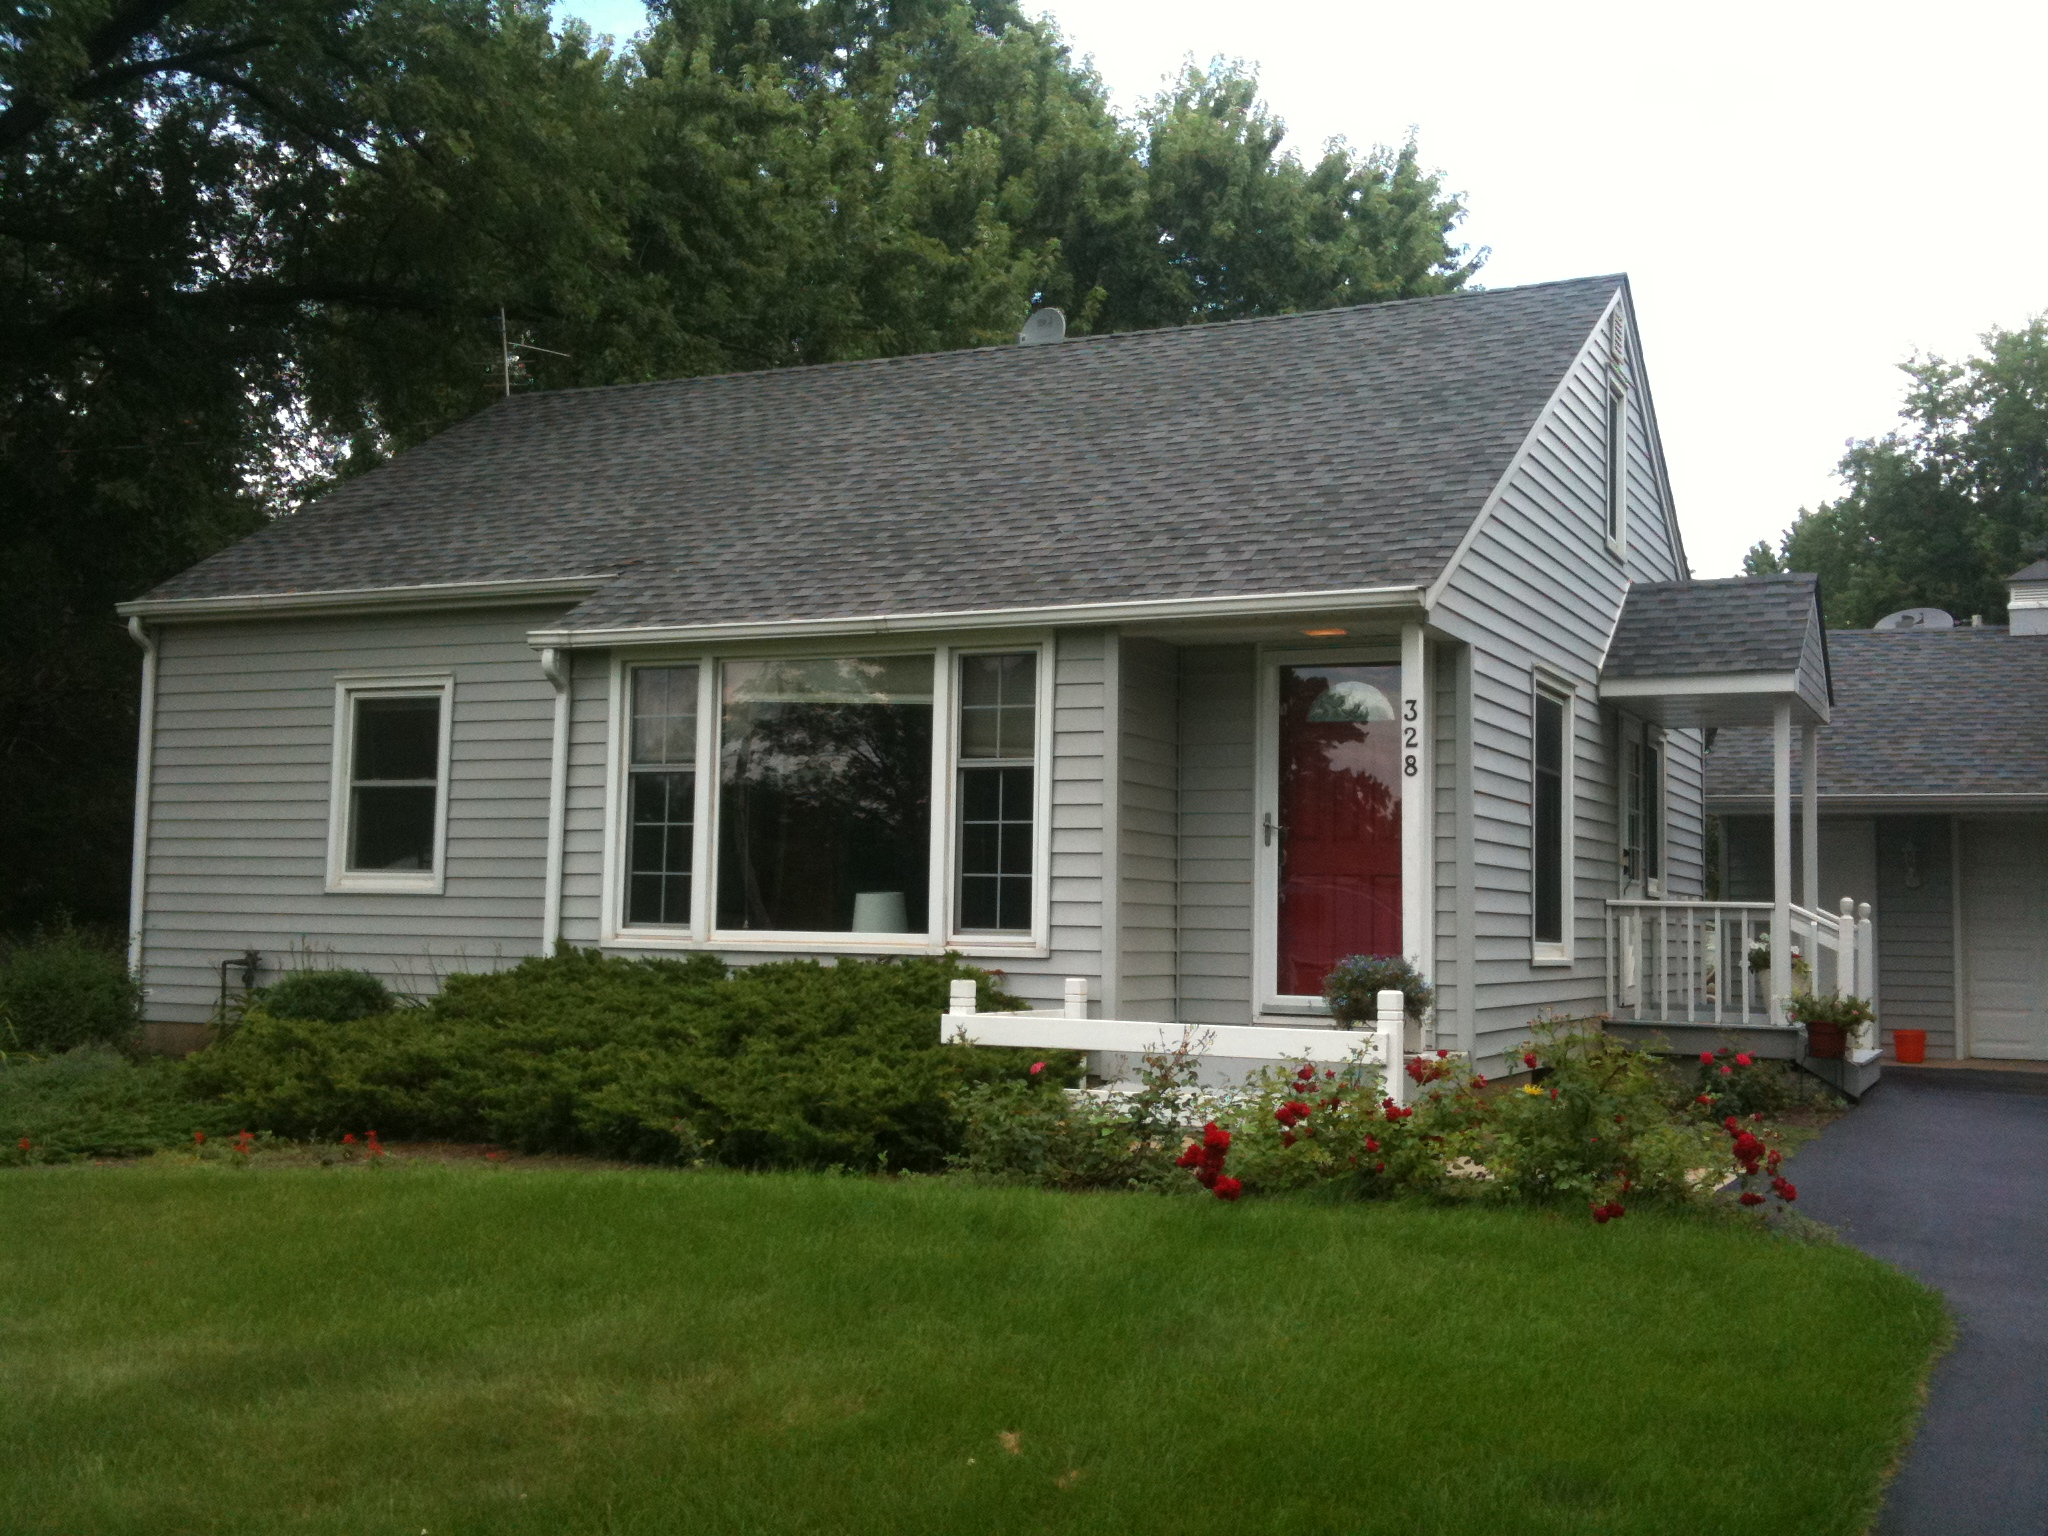 What style home is this houses bungalow office space for Cape cod bungalow